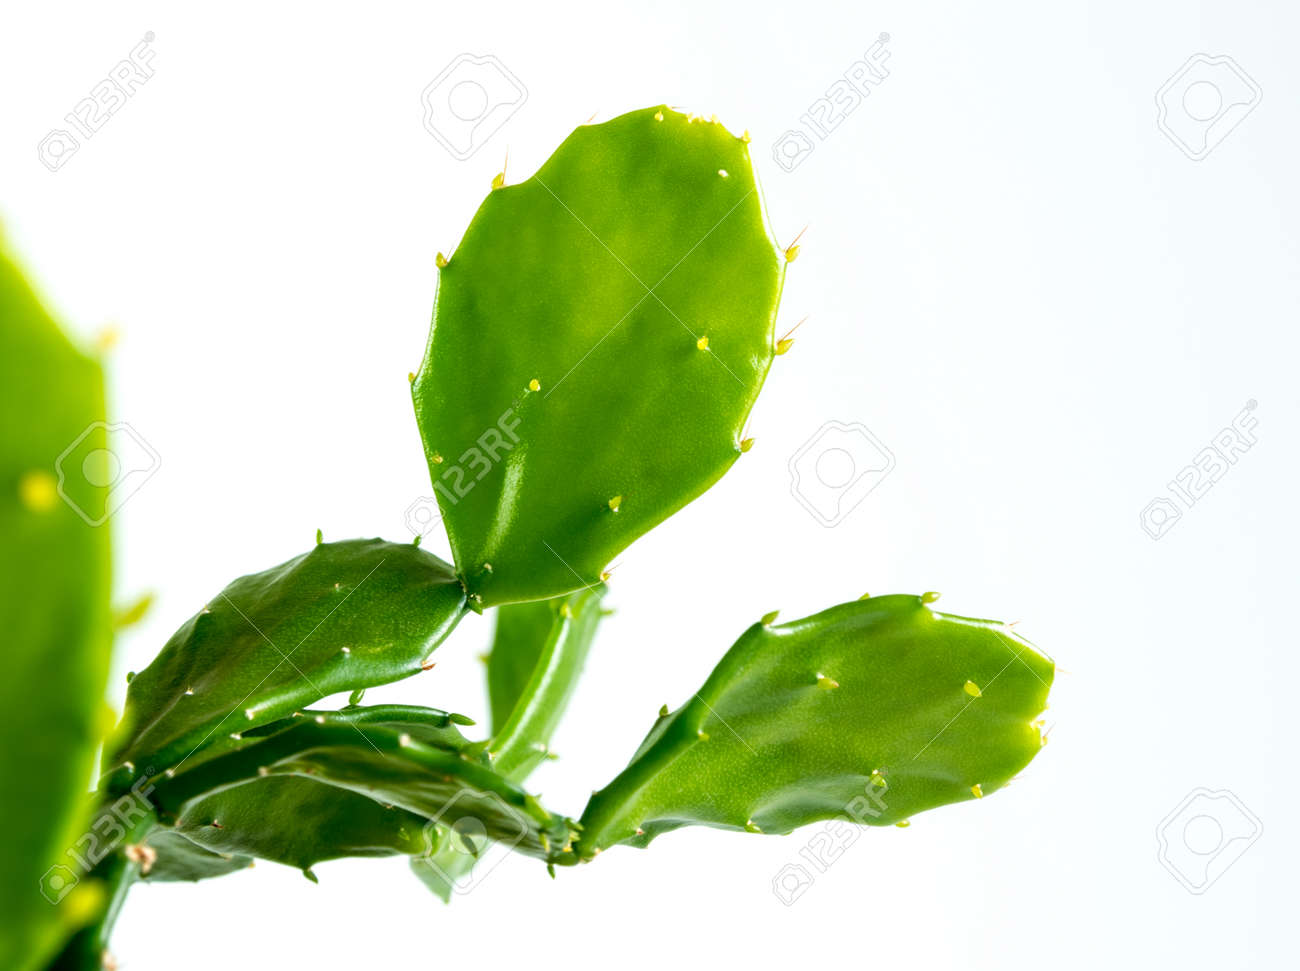 Green leaves on green leafpads of succulent plant Opuntia tuna cactus - 171811261